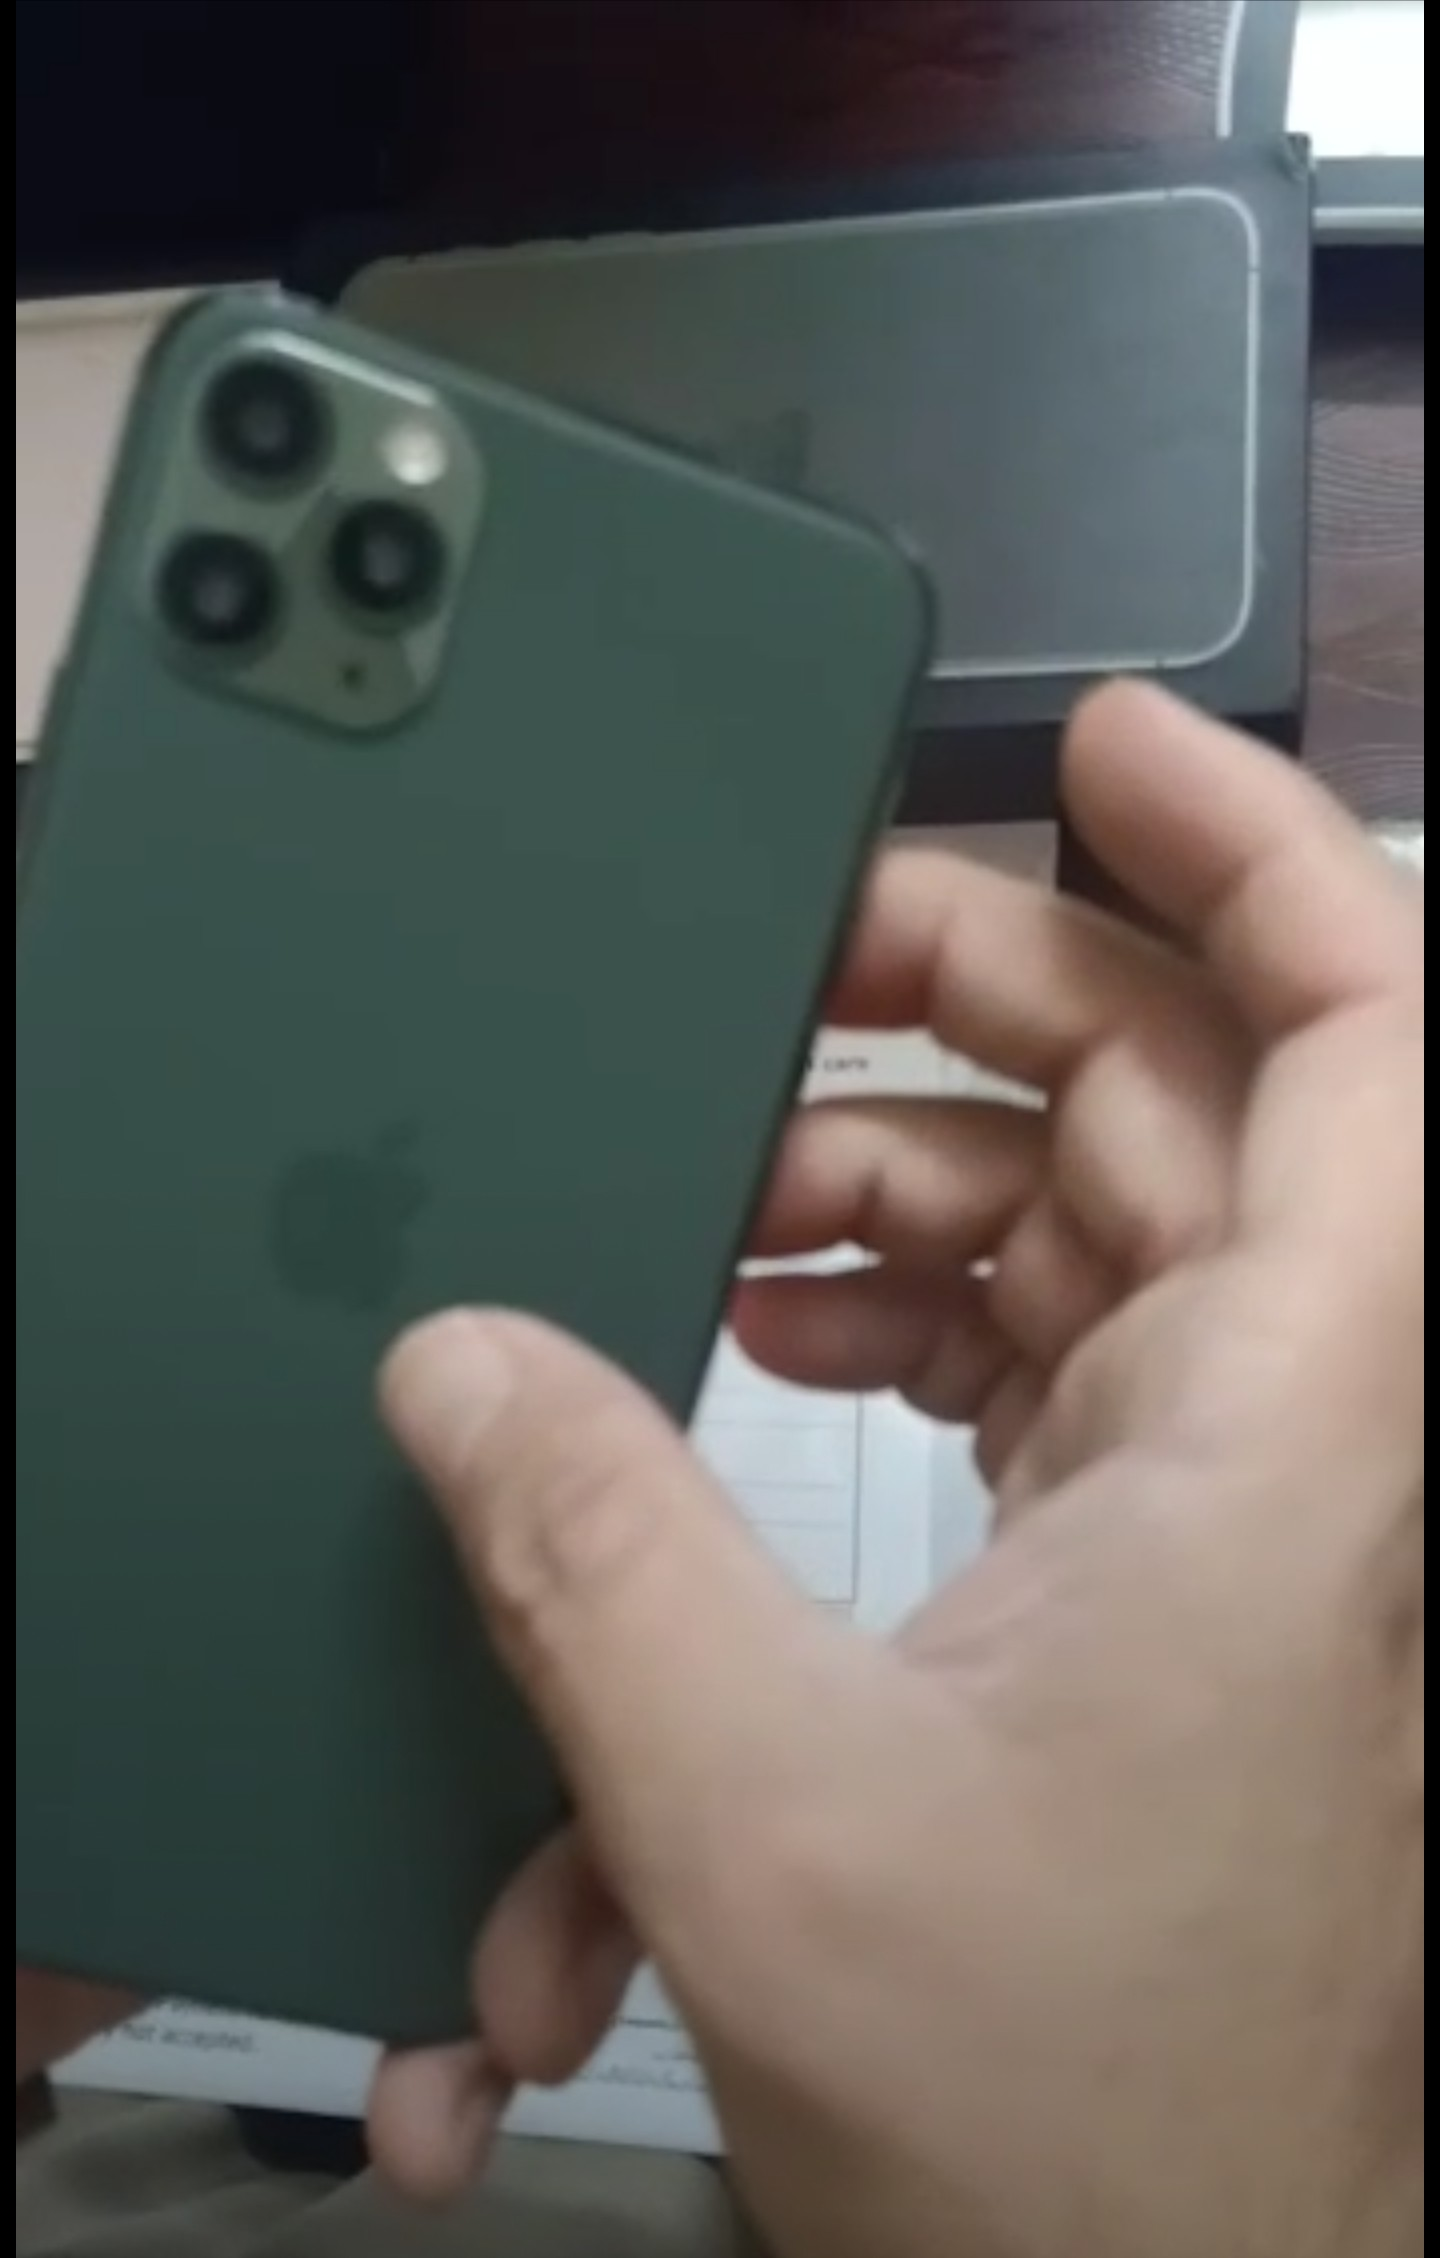 Offer for karachi users iphone 11 and 12 pro max turkish made ramazn offer - photo 2